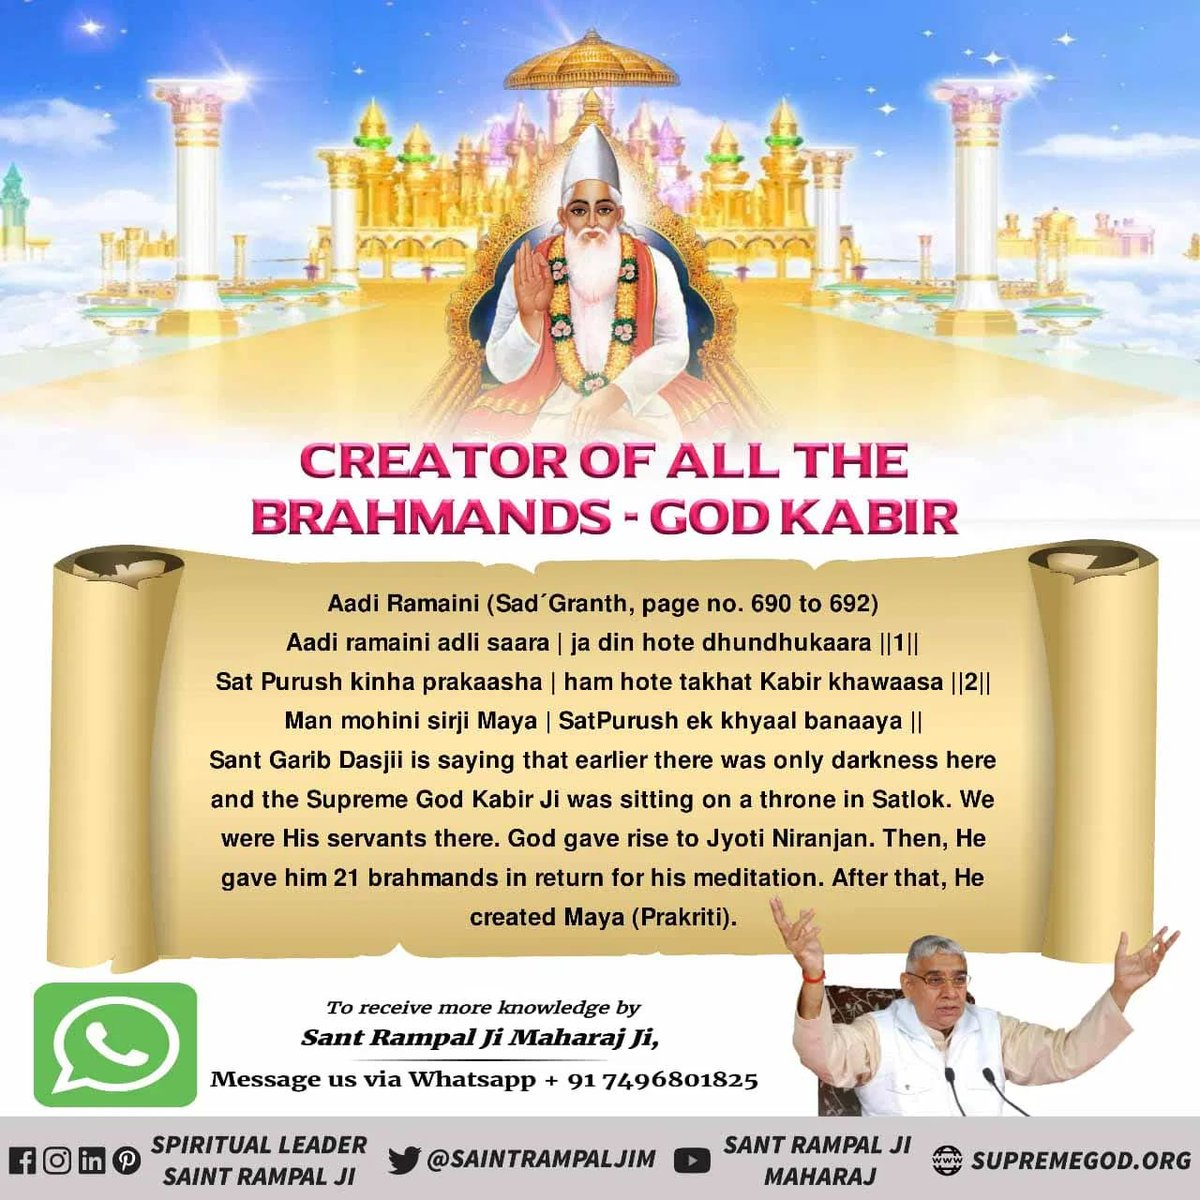 #GodMorningSunday  GOD KABIR  COMES IN ALL THE FOUR YUGAS  Lord Kabir appeared on a lotus flower in the Lehartara pond of Kashi in Kalyug and was known by His actual name. A childless couple, Neeru and Neema, nurtured Him in Kalyug. @SaintRampalJiM #sundayvibes #SundayMotivation